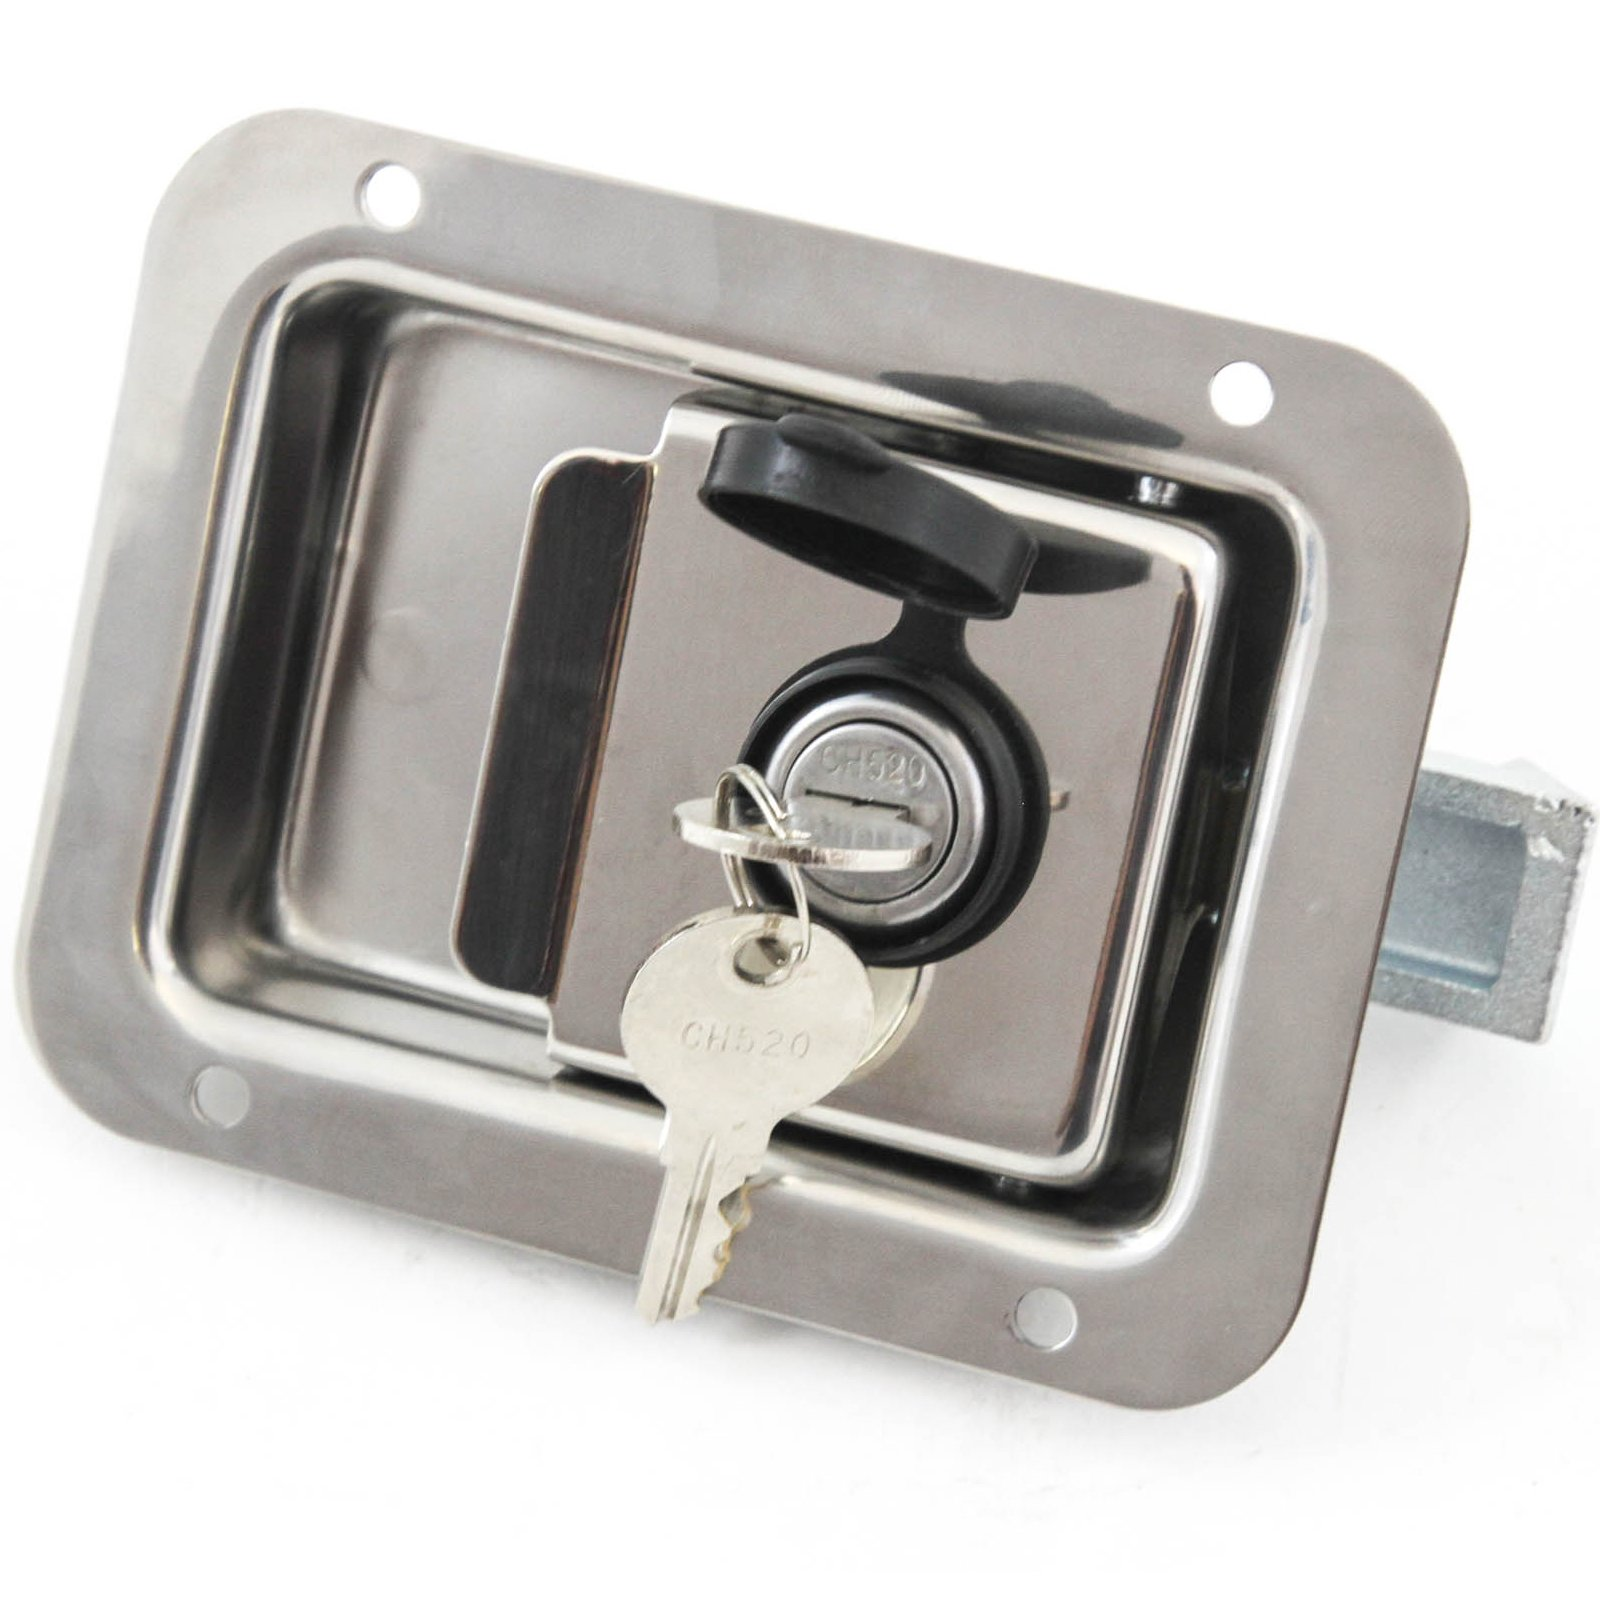 Red Hound Auto Stainless Door Lock Trailer Toolbox Handle Latch 4-5/8'' 3-5/8'' Paddle Key Cover